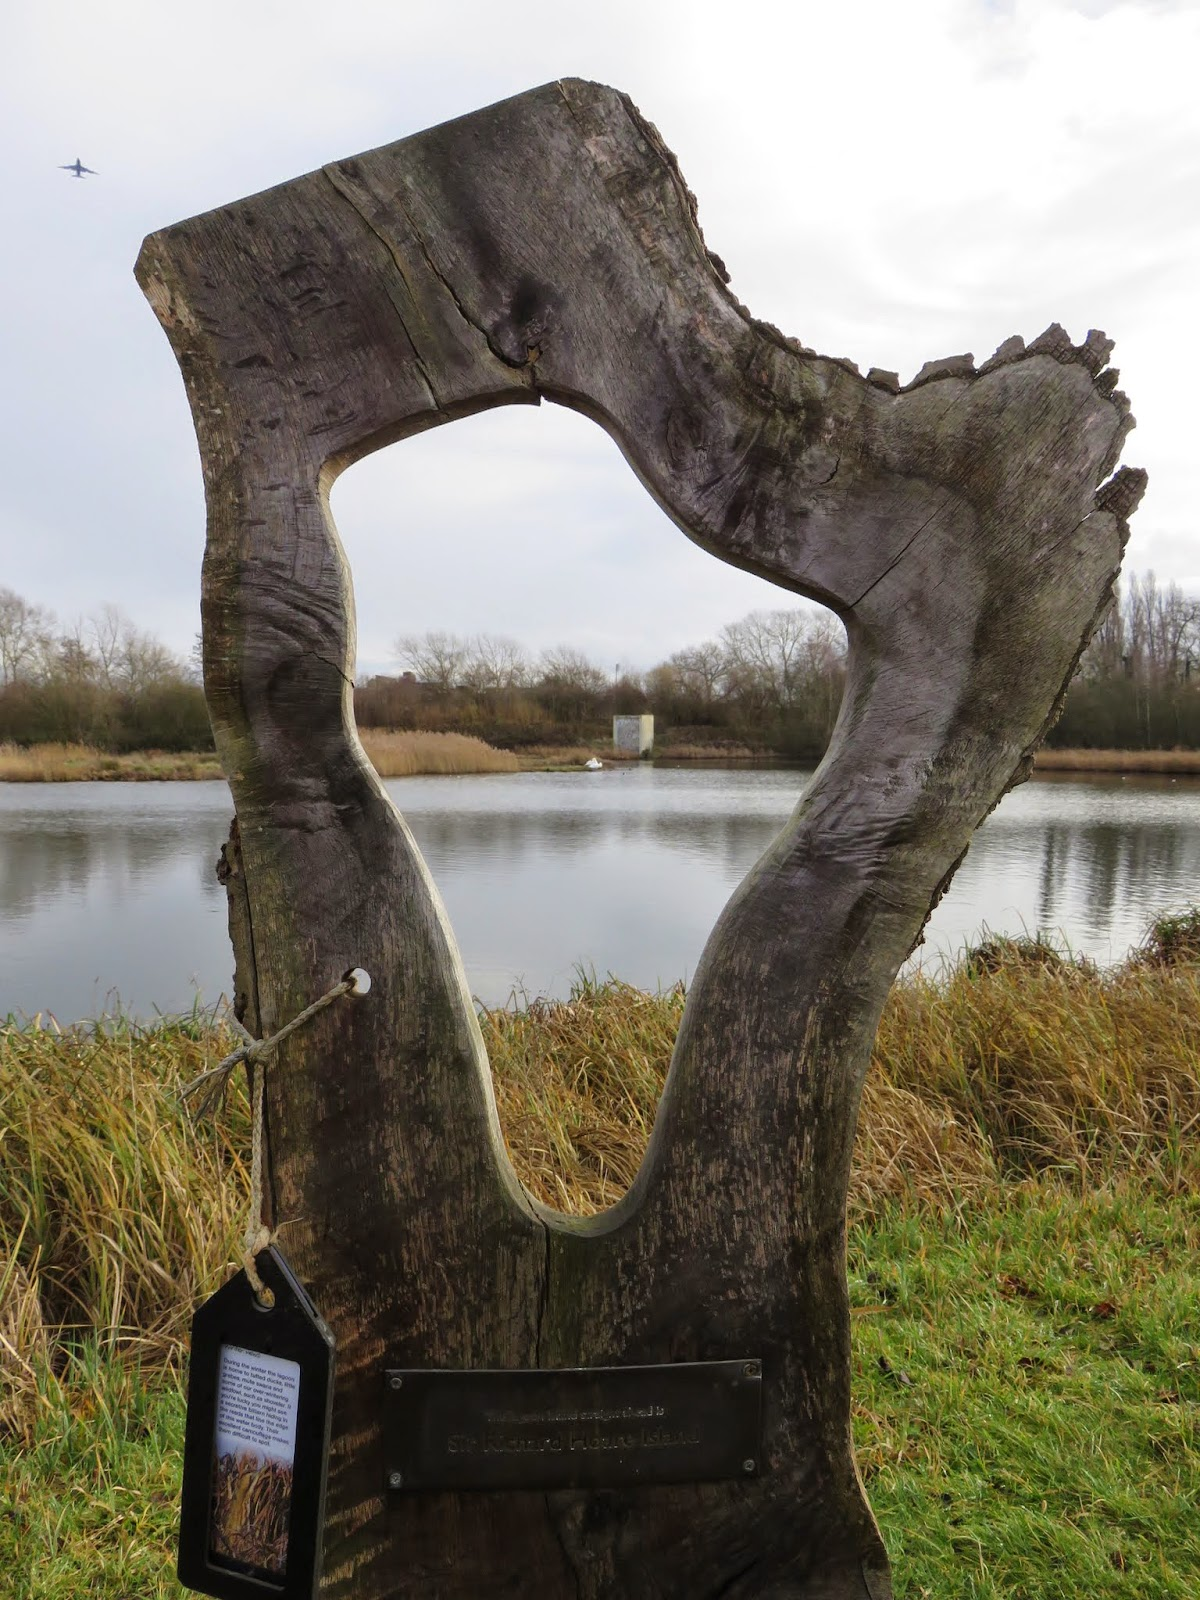 Sculpture at the Wildfowl and Wetland Trust London Sanctuary in winter